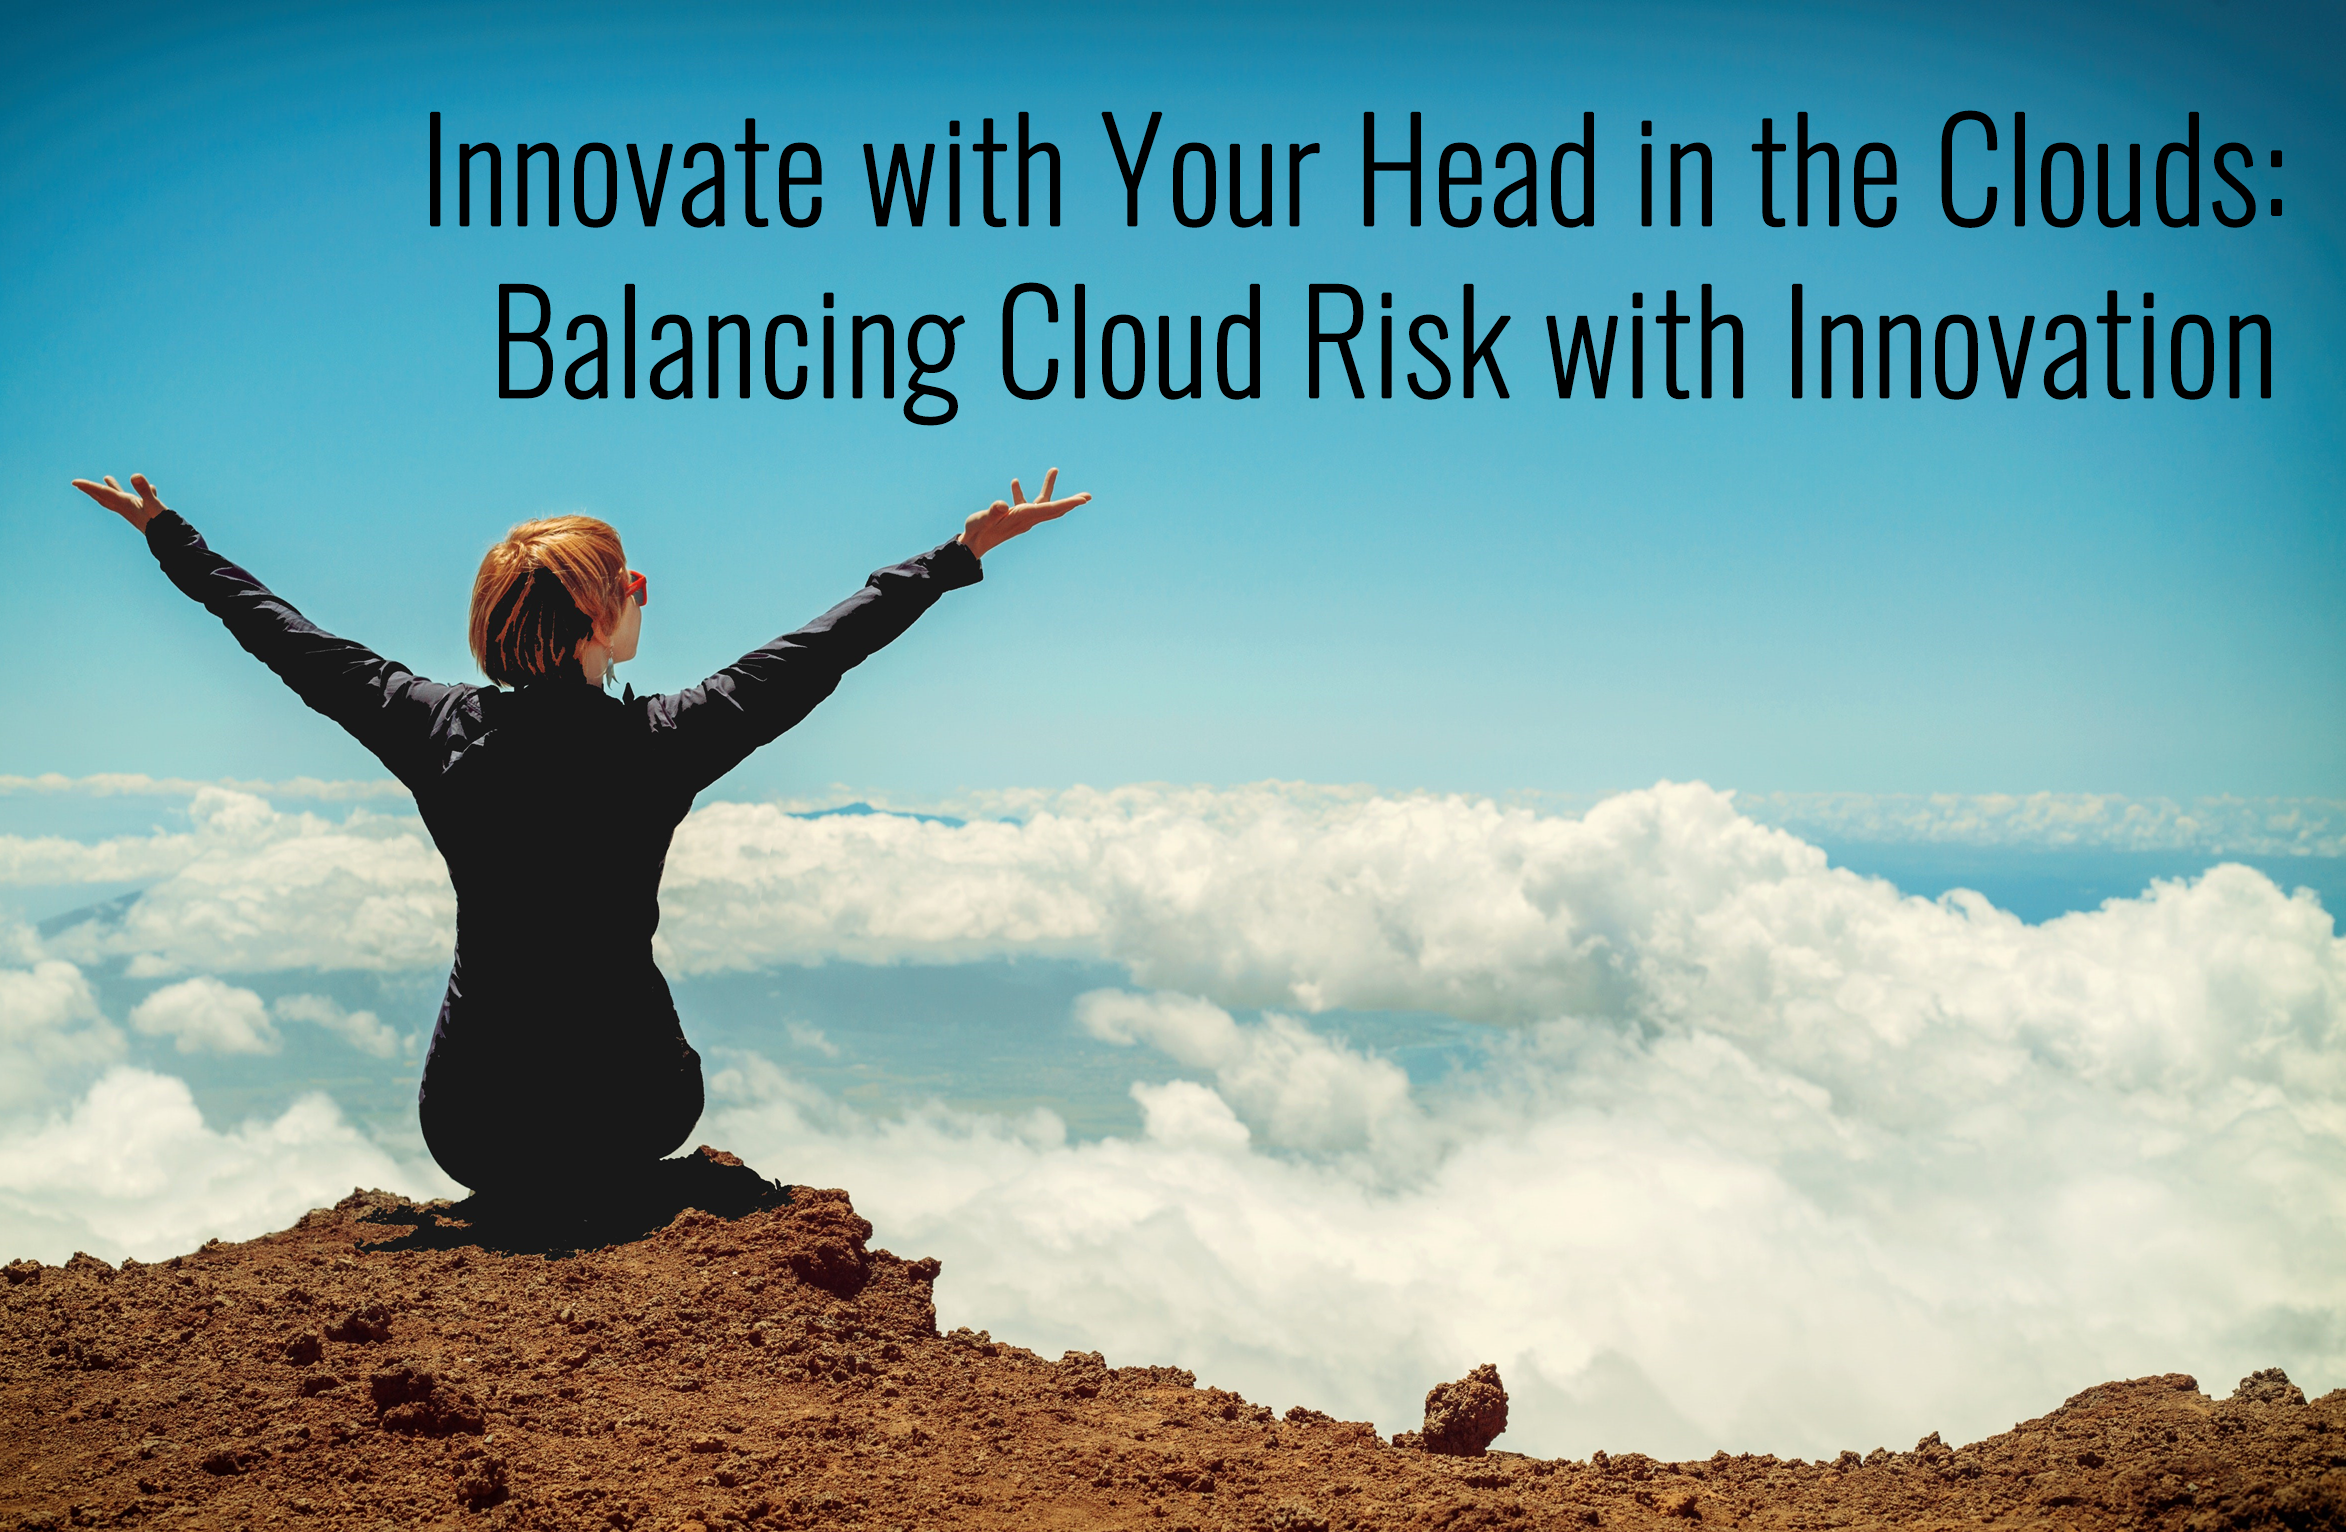 Innovate with Your Head in The Clouds: Balancing Cloud Risk with Innovation